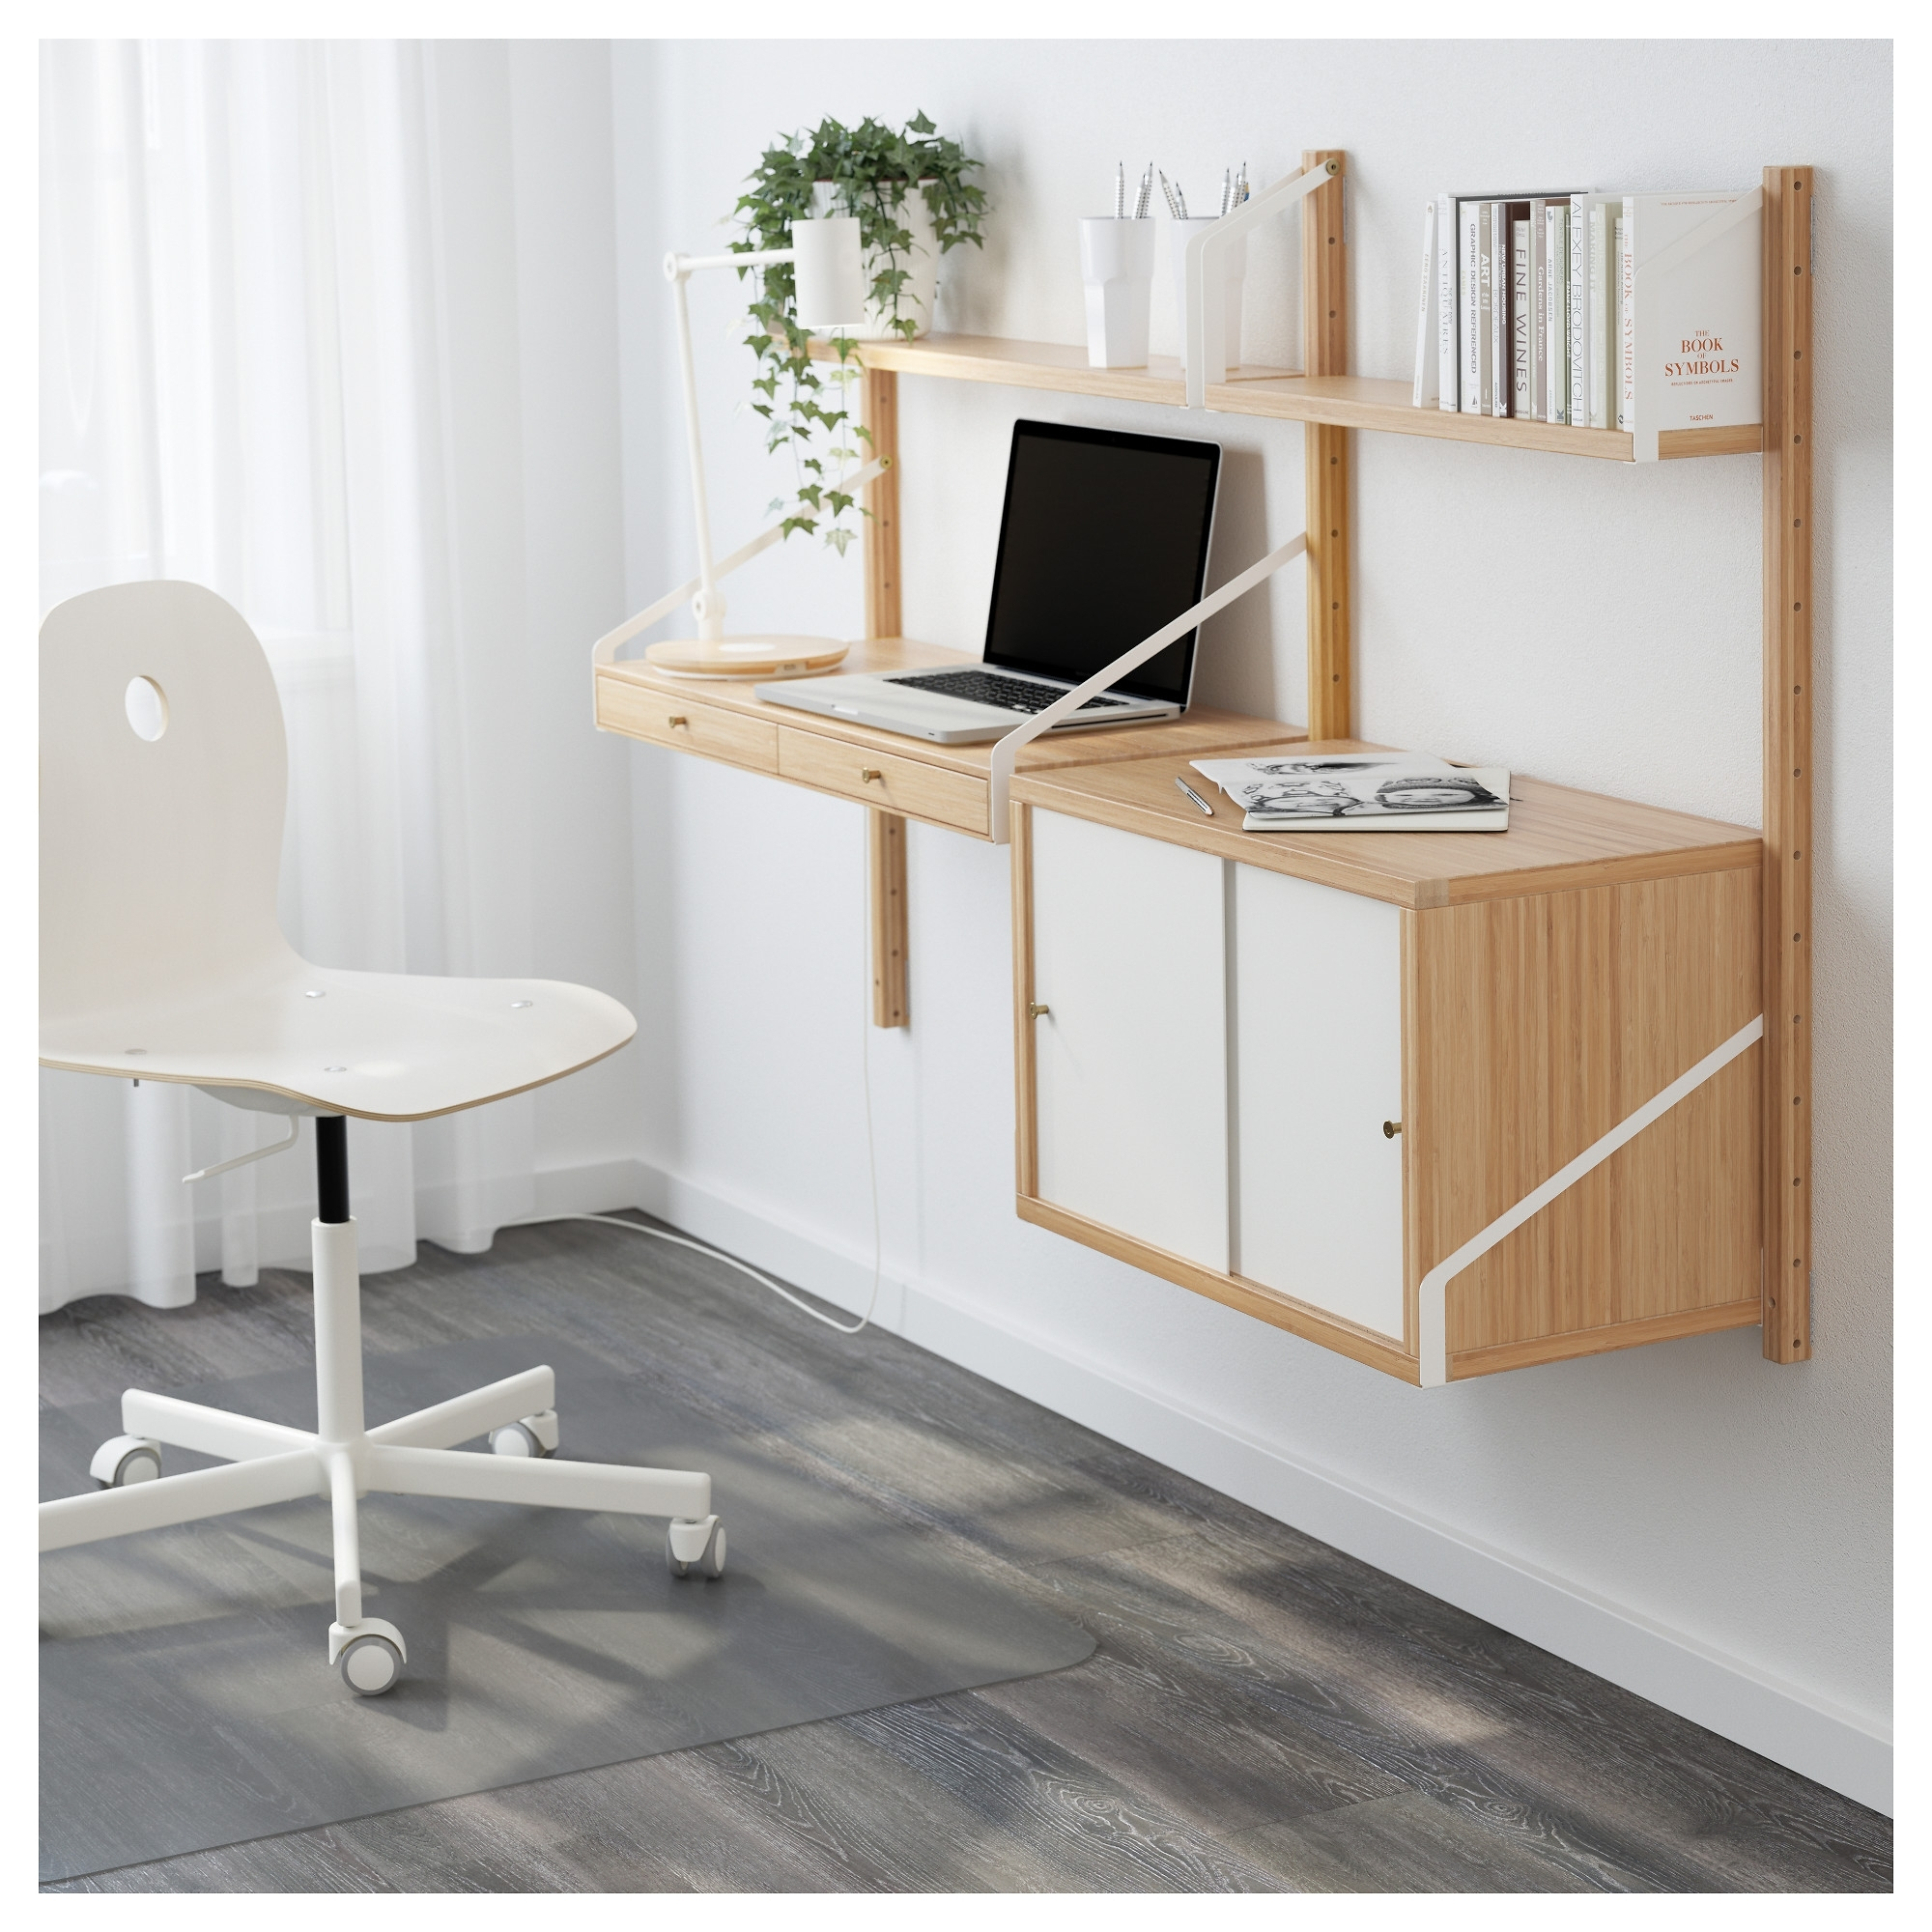 Image of: Built In Home Office Cabinets